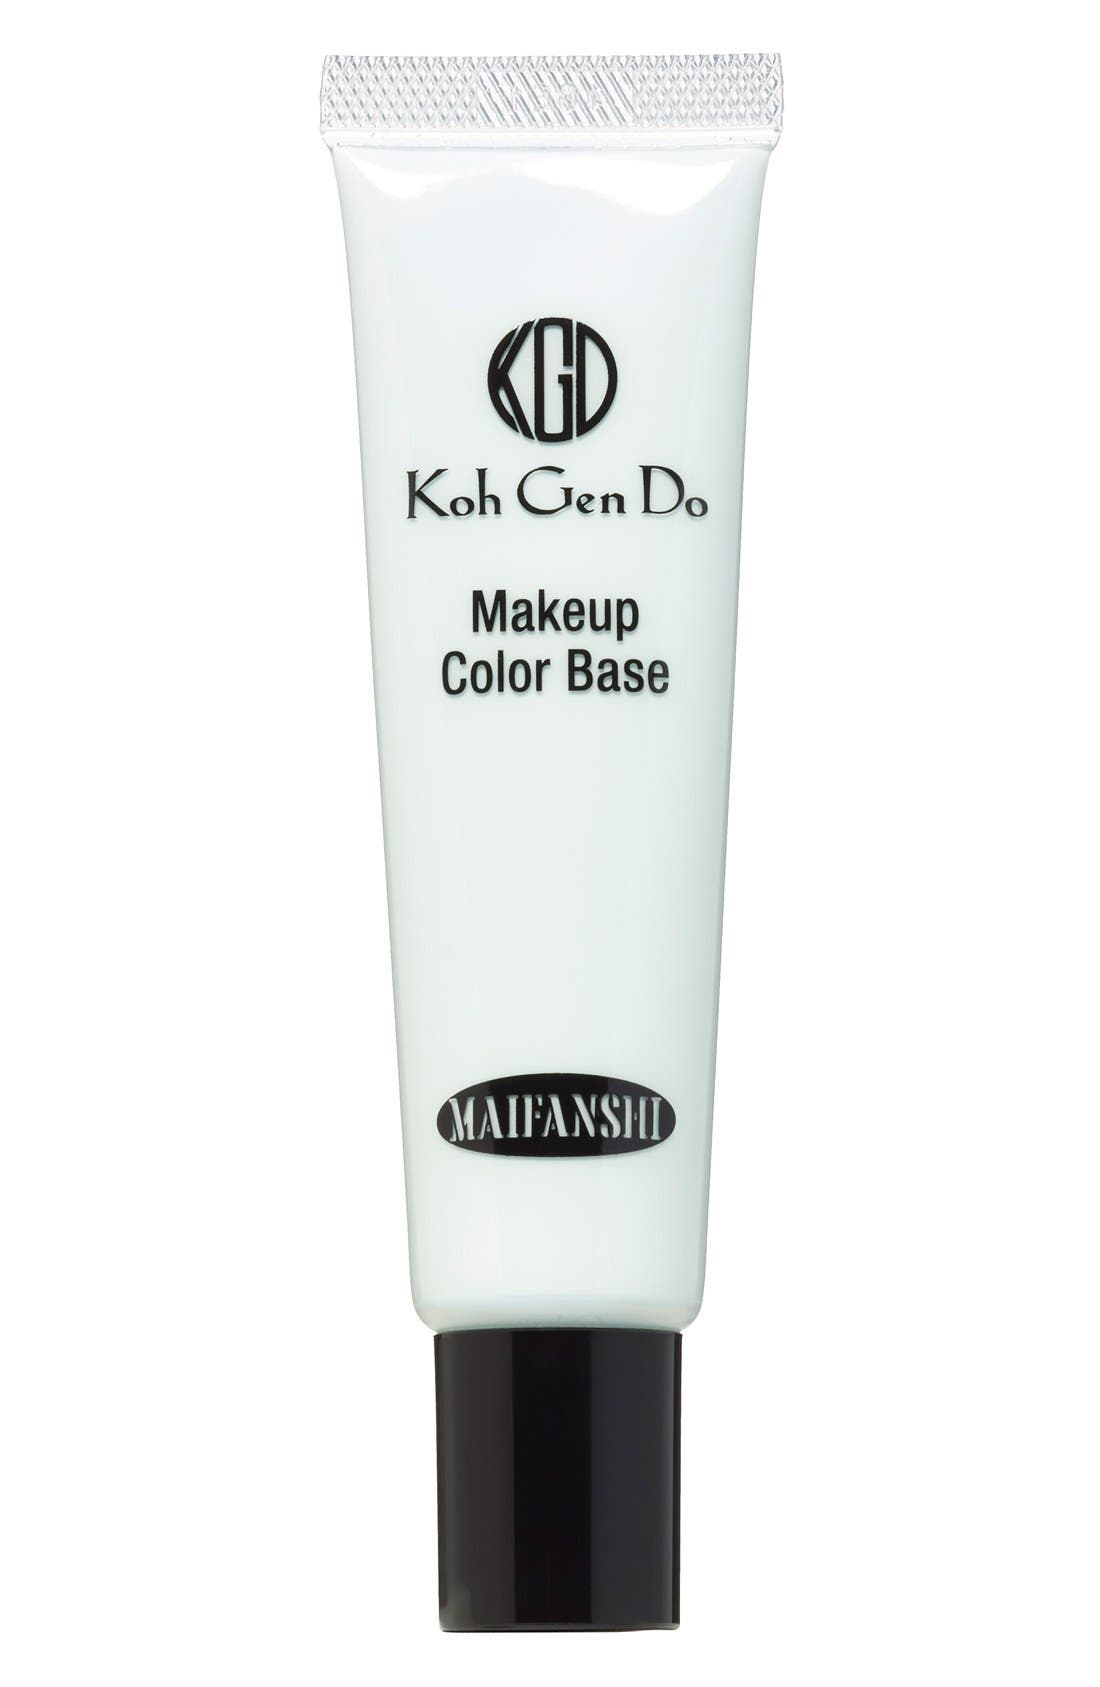 'Maifanshi - Pearl White' Makeup Color Base,                             Main thumbnail 1, color,                             300